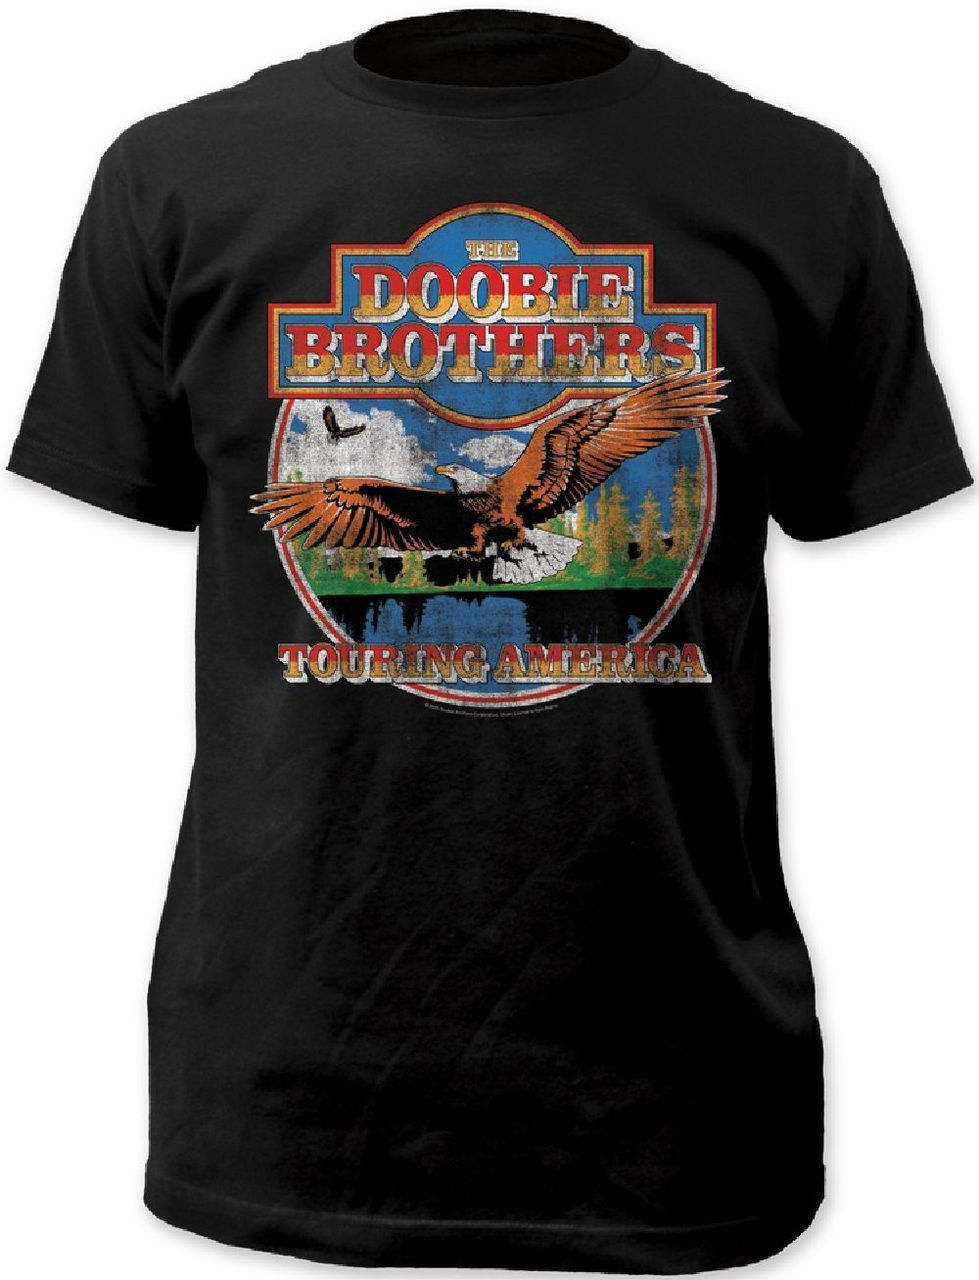 0affec96a52b Our Doobie Brothers vintage concert tshirt is from one of the band s tours  from the late 1970s-early 1980s. The Doobie Brothers are one of the most  famous ...